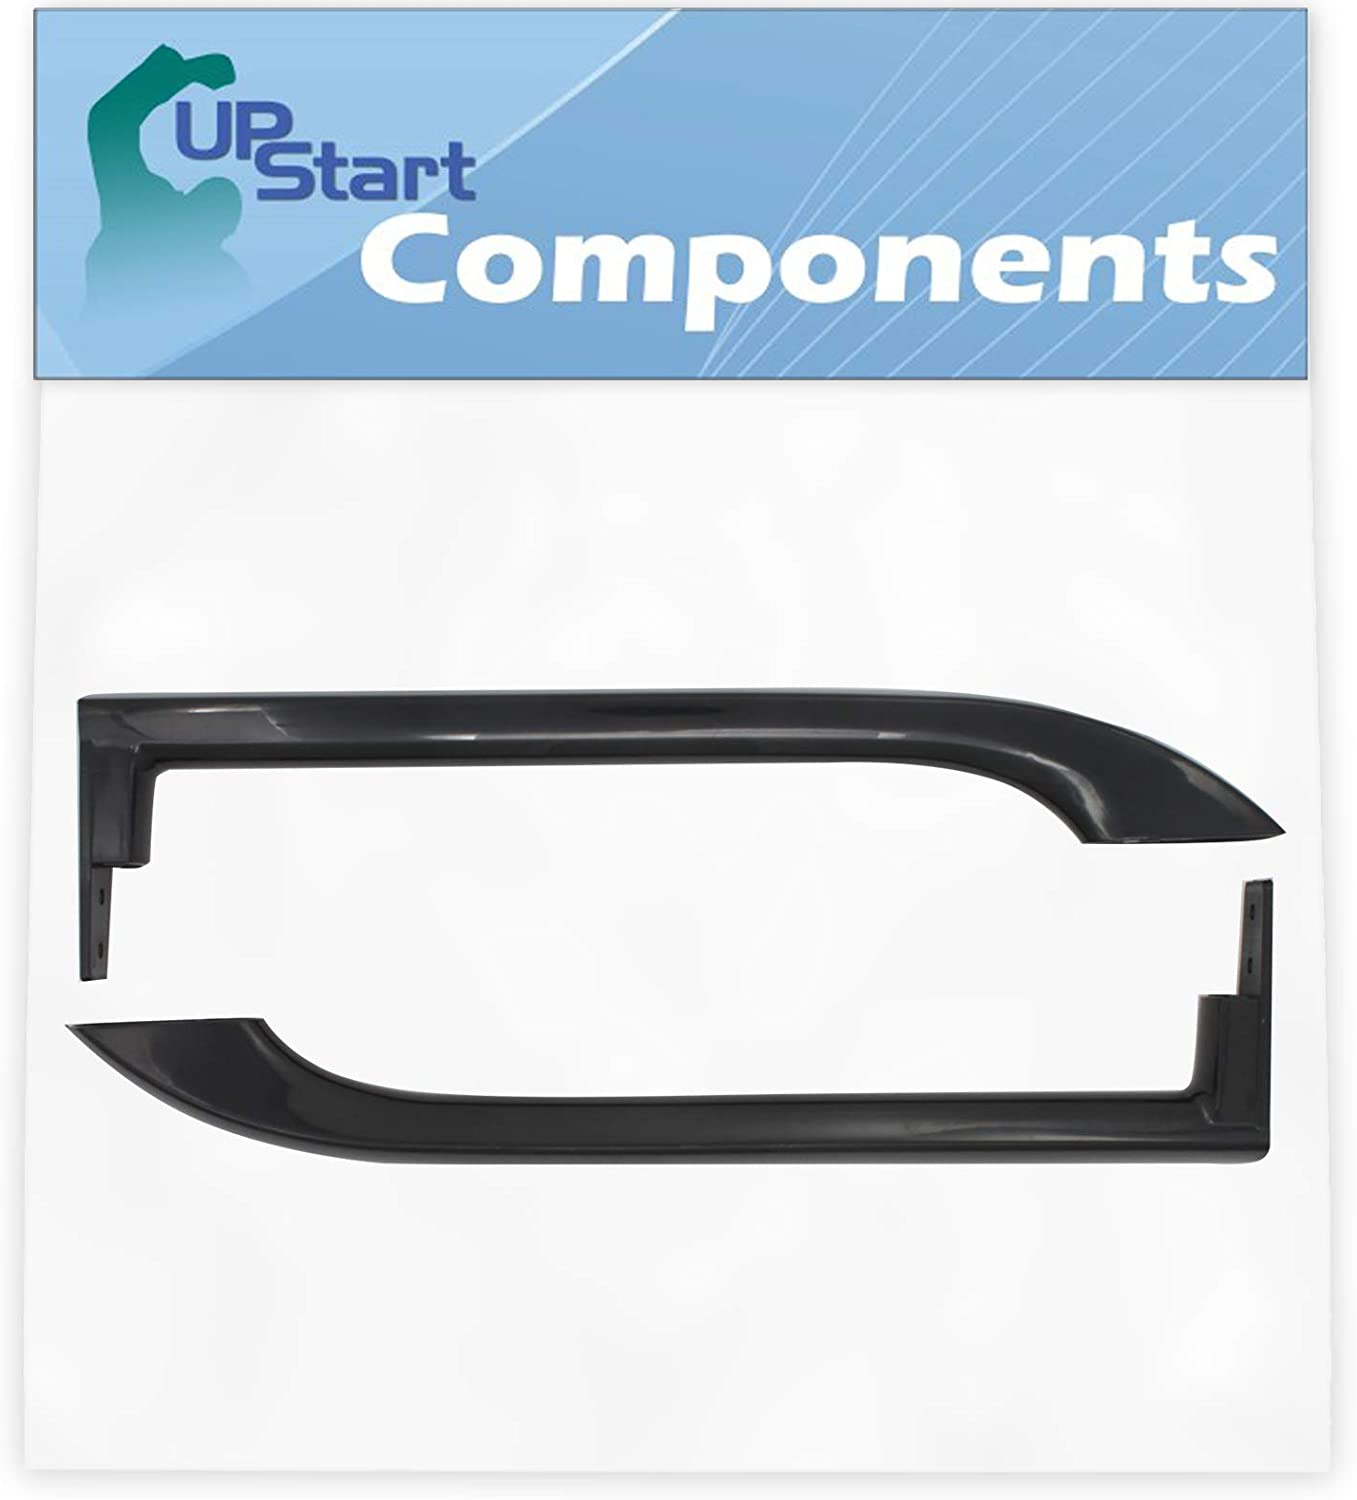 5304506471 Refrigerator Door Handle Replacement for Frigidaire LFHT1817LB2 Refrigerator - Compatible with 5304506471 Black Door Handle - UpStart Components Brand